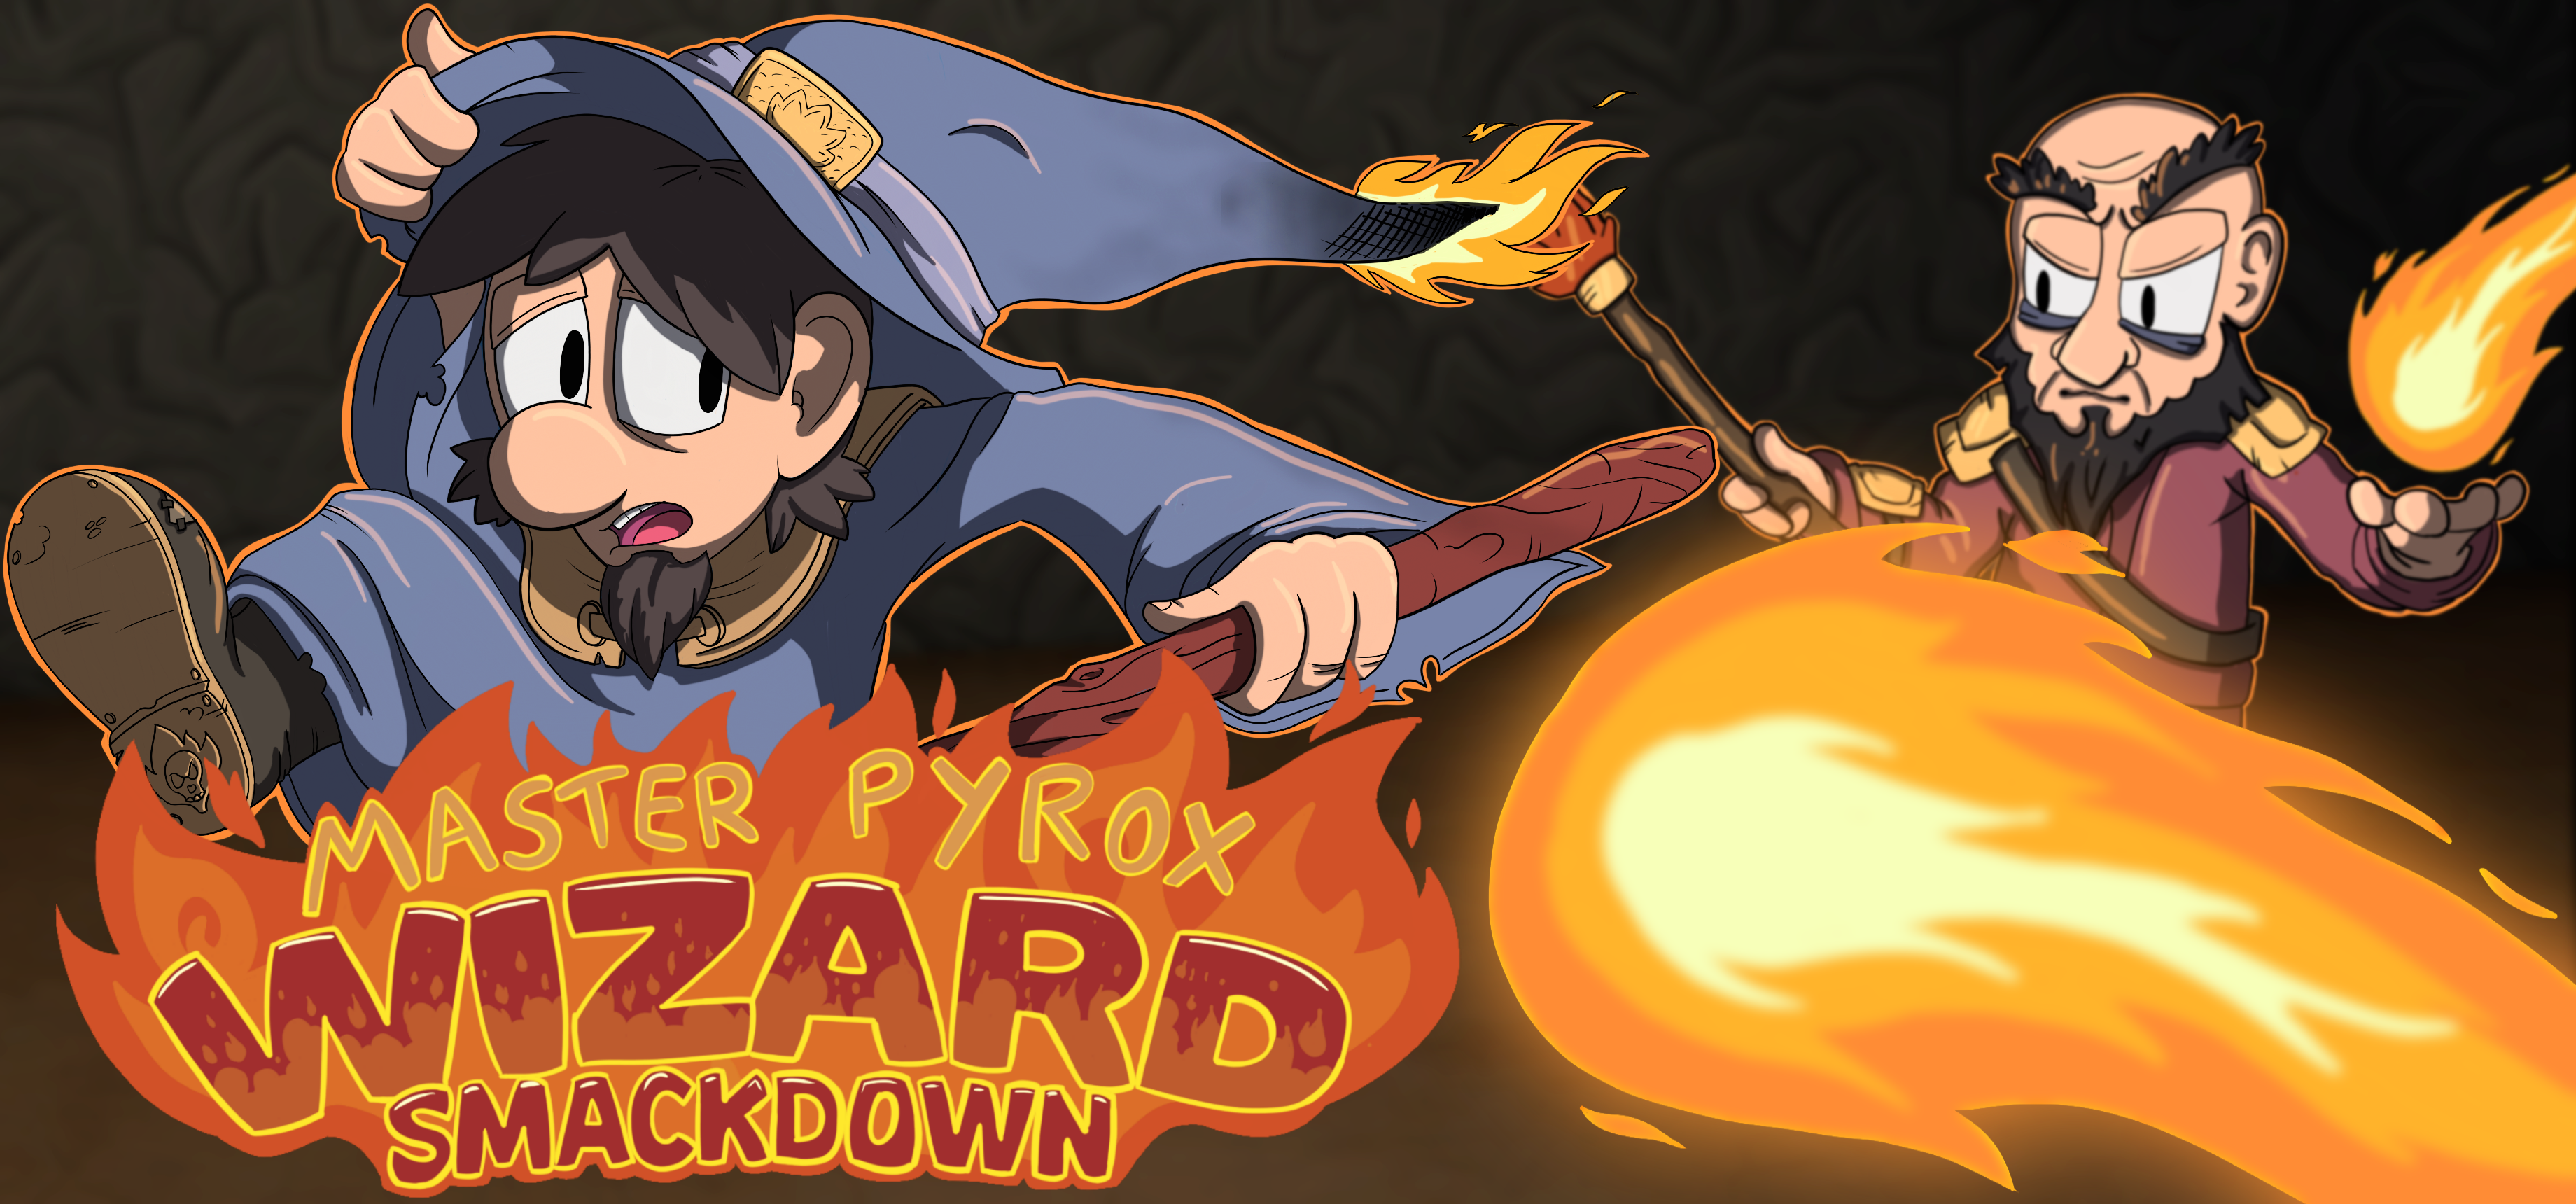 Master Pyrox Wizard Smackdown now on Steam